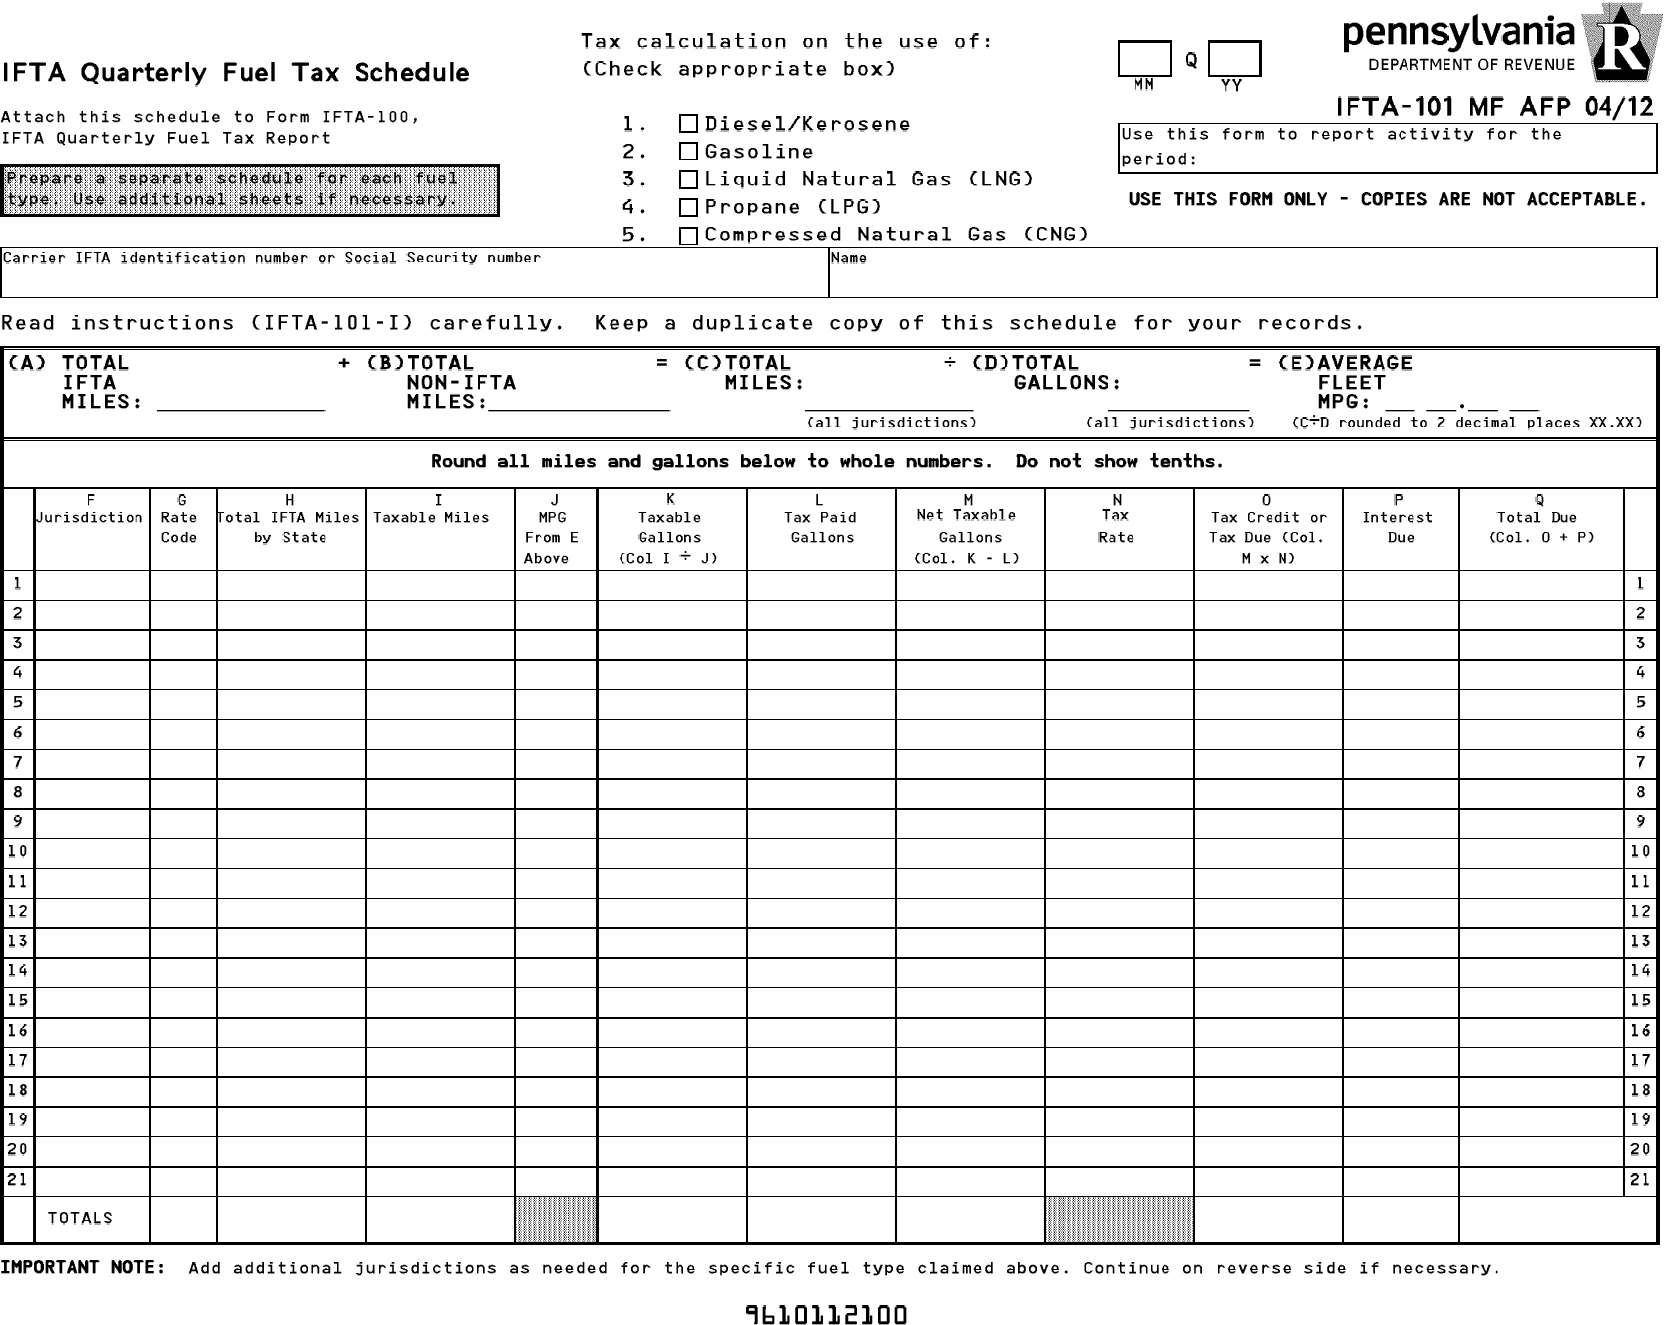 All personnel report form page 7